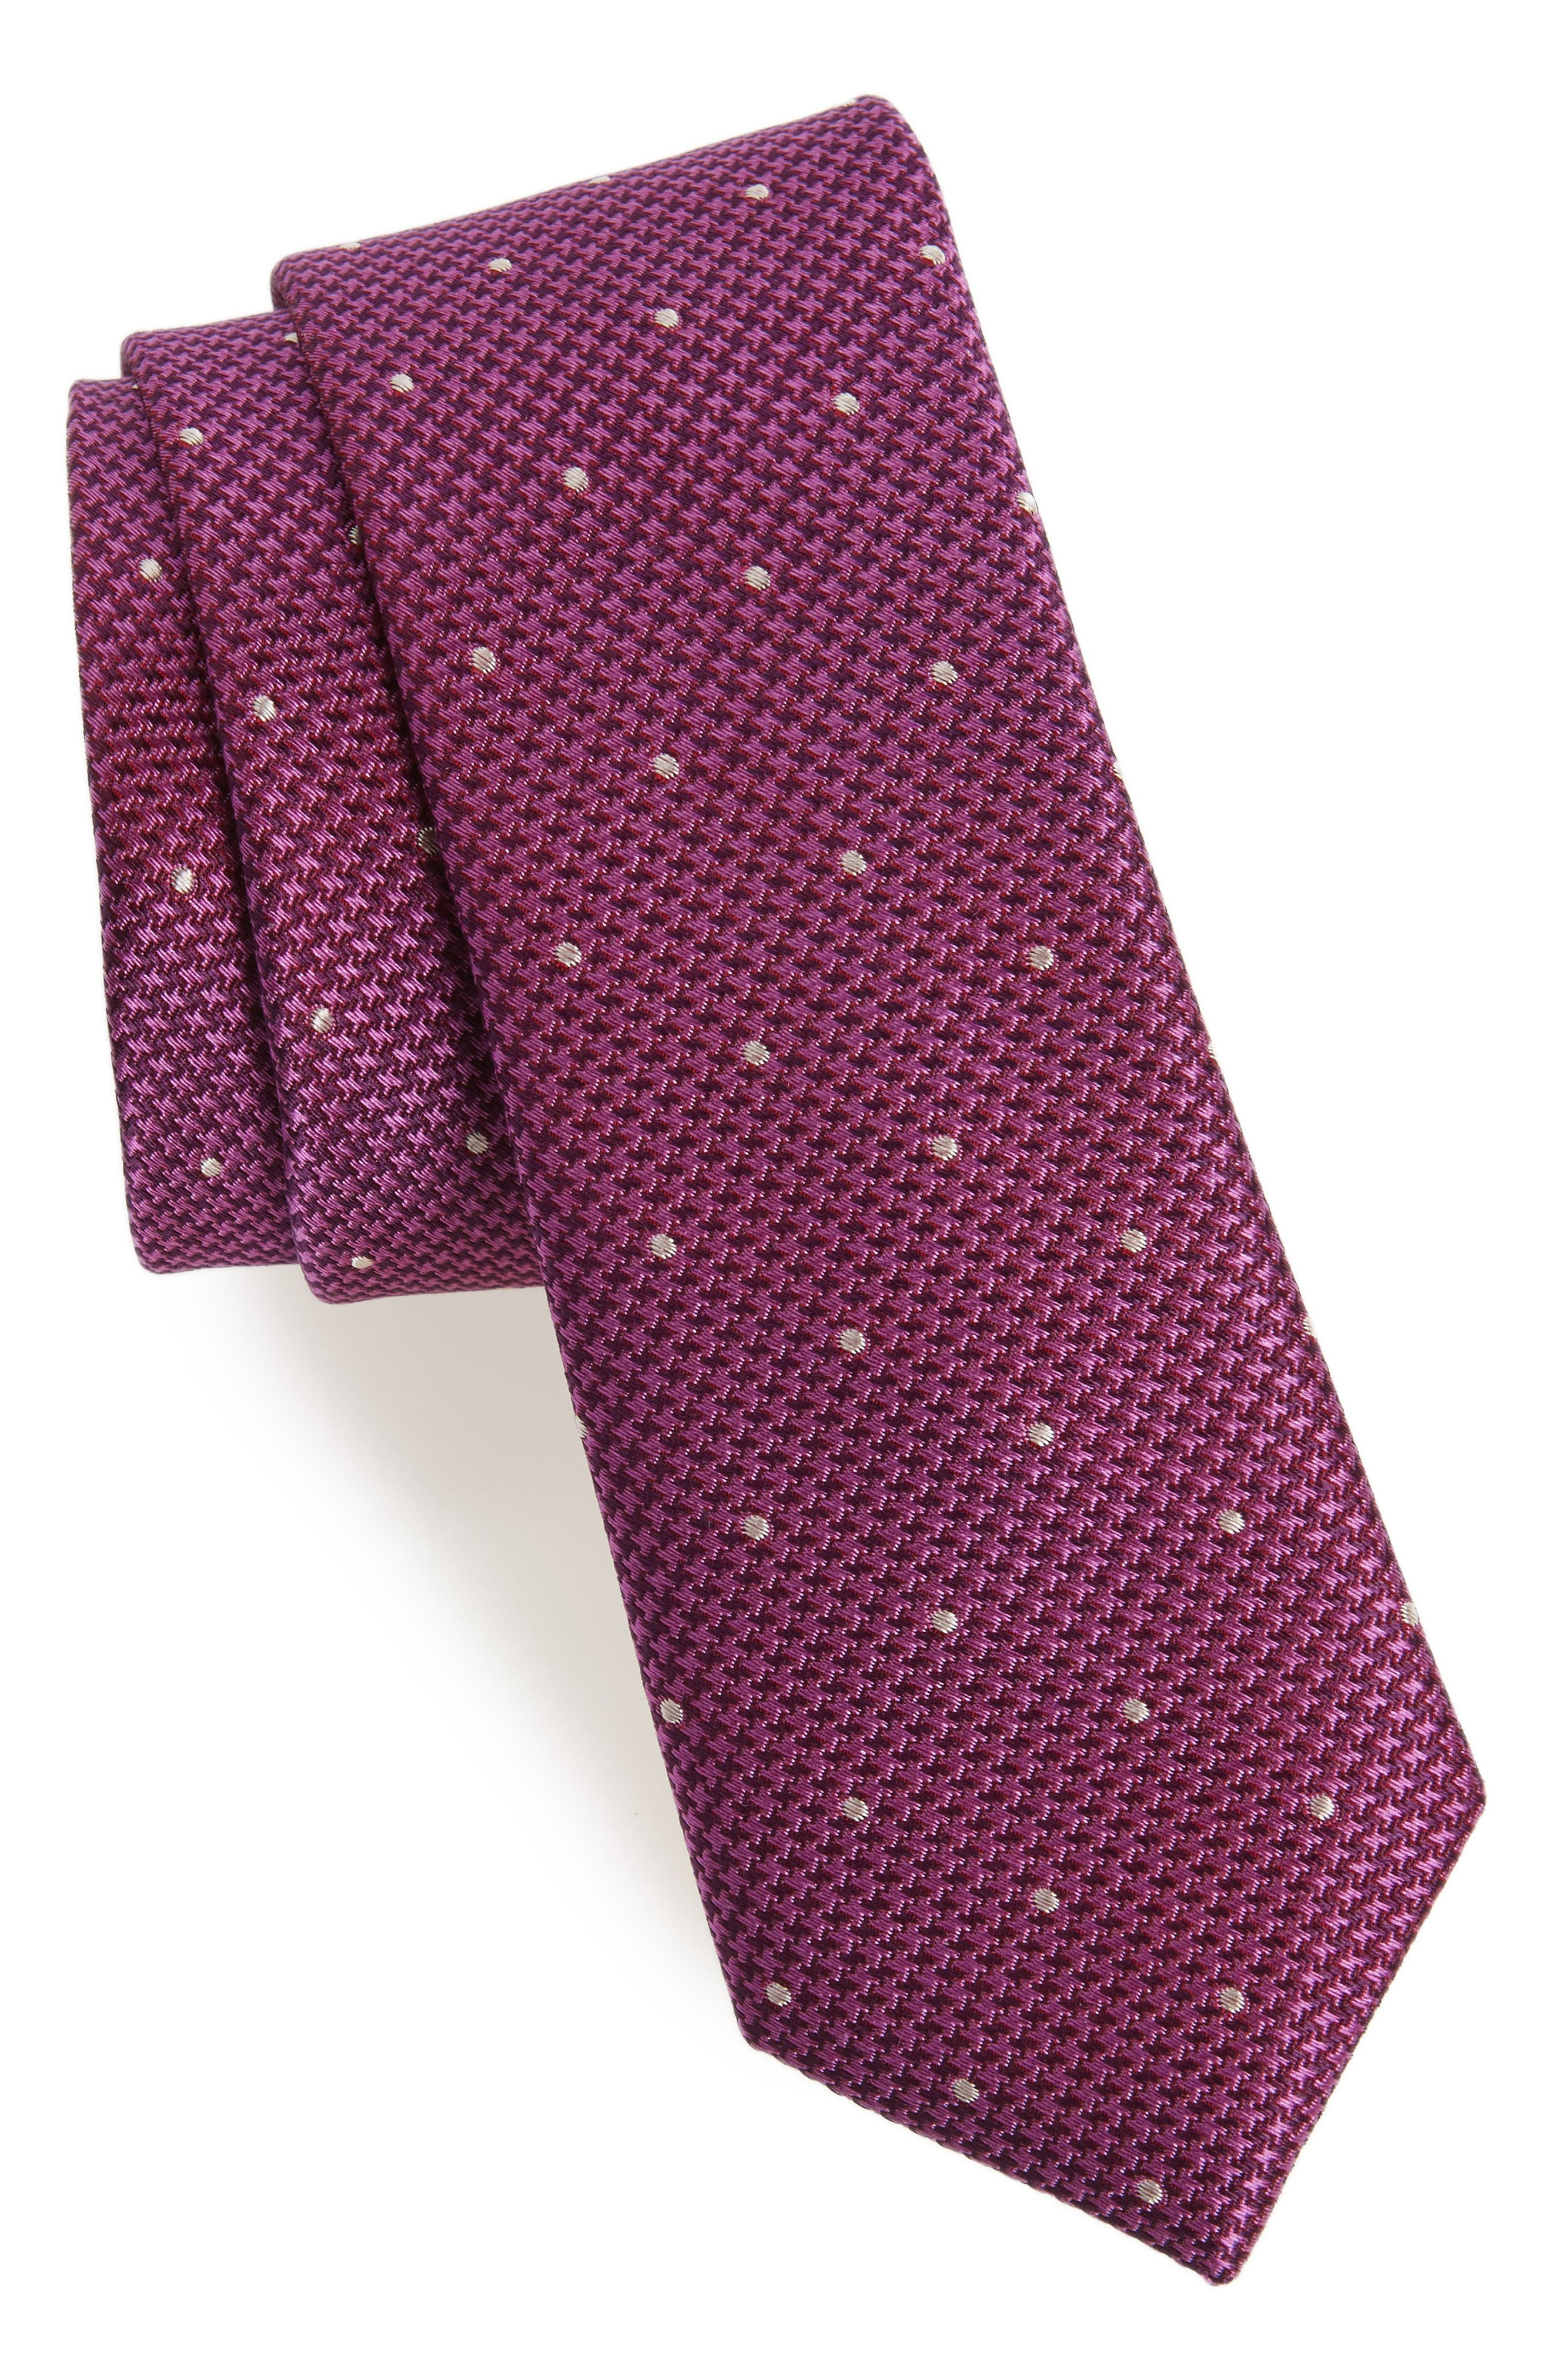 Houndstooth Dot Silk Tie,                             Main thumbnail 1, color,                             Berry